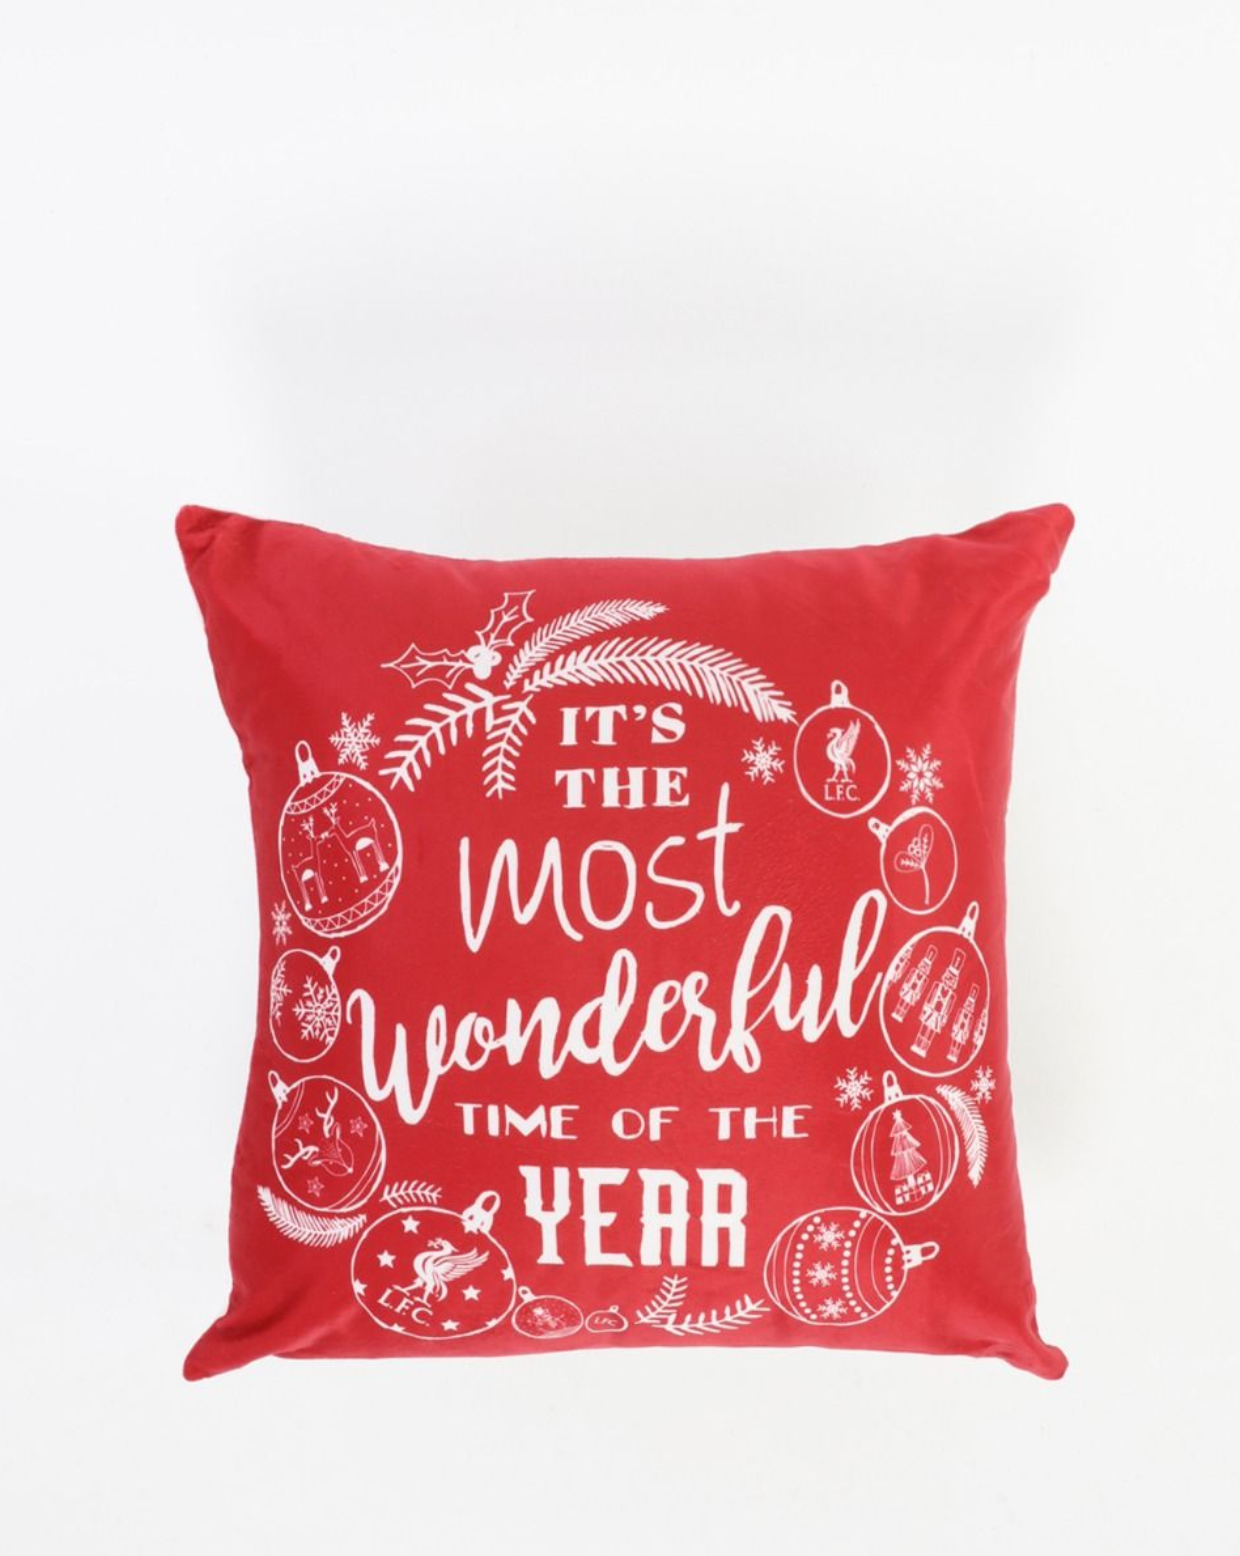 Liverpool FC Christmas Pillow Cushion Cover